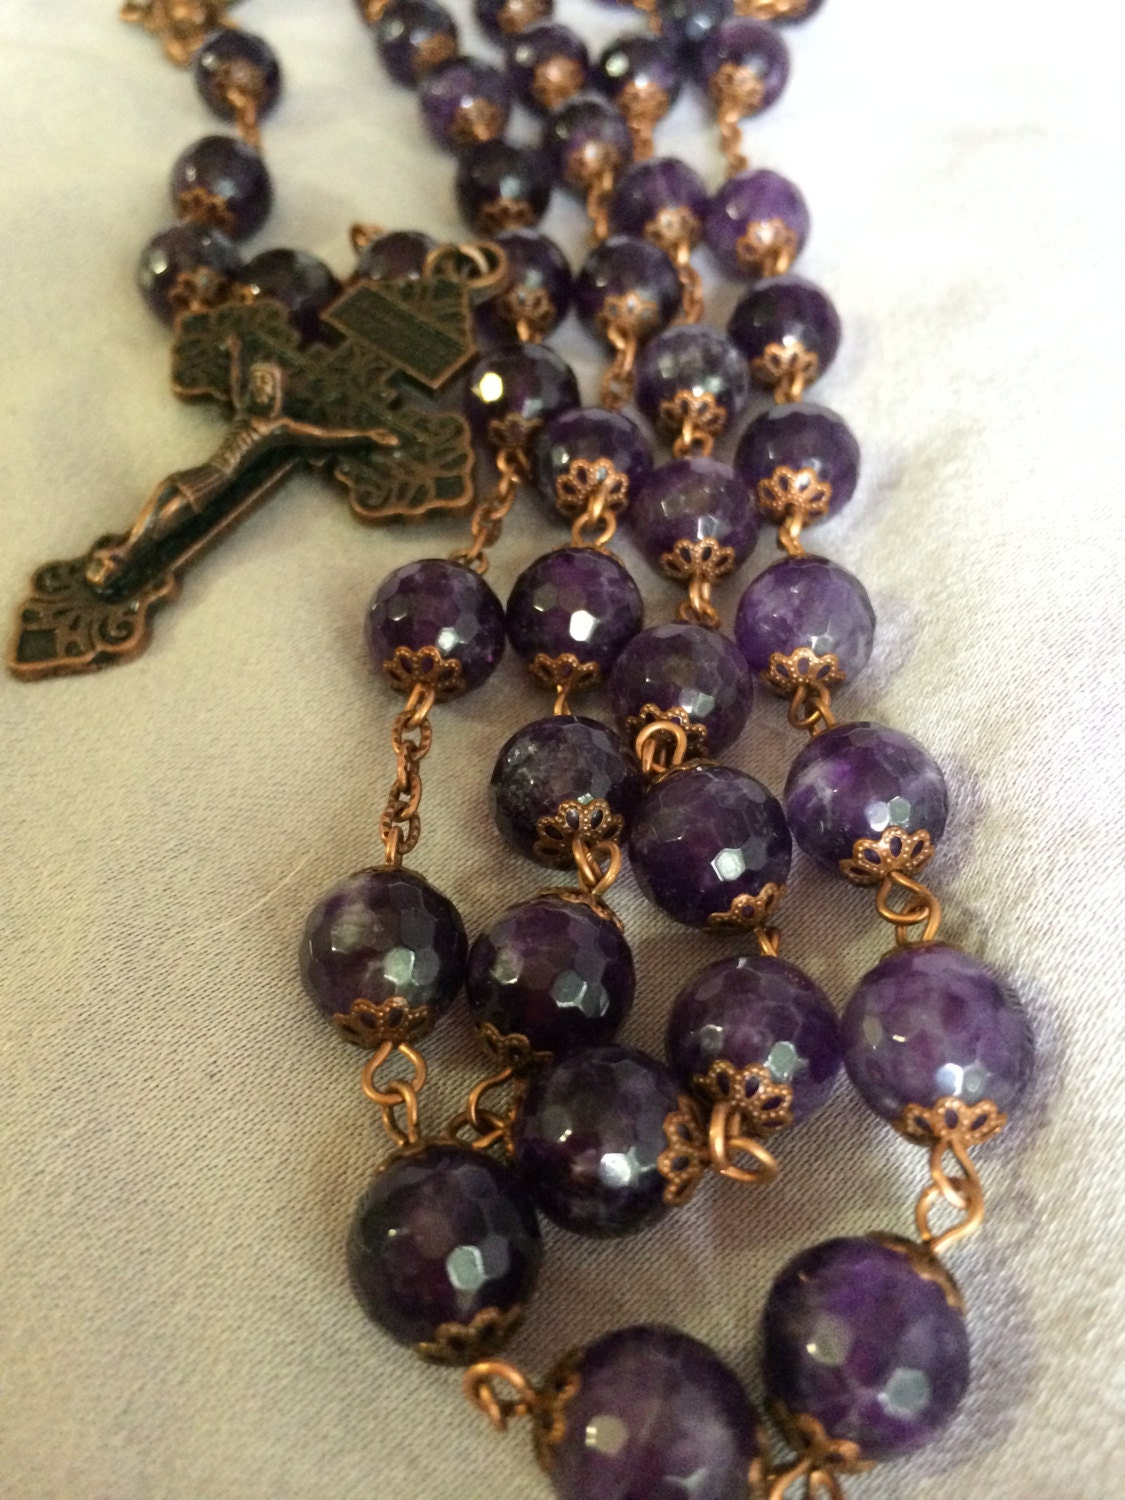 Large 10mm Amethyst Natural Stone Bead Rosary In Copper